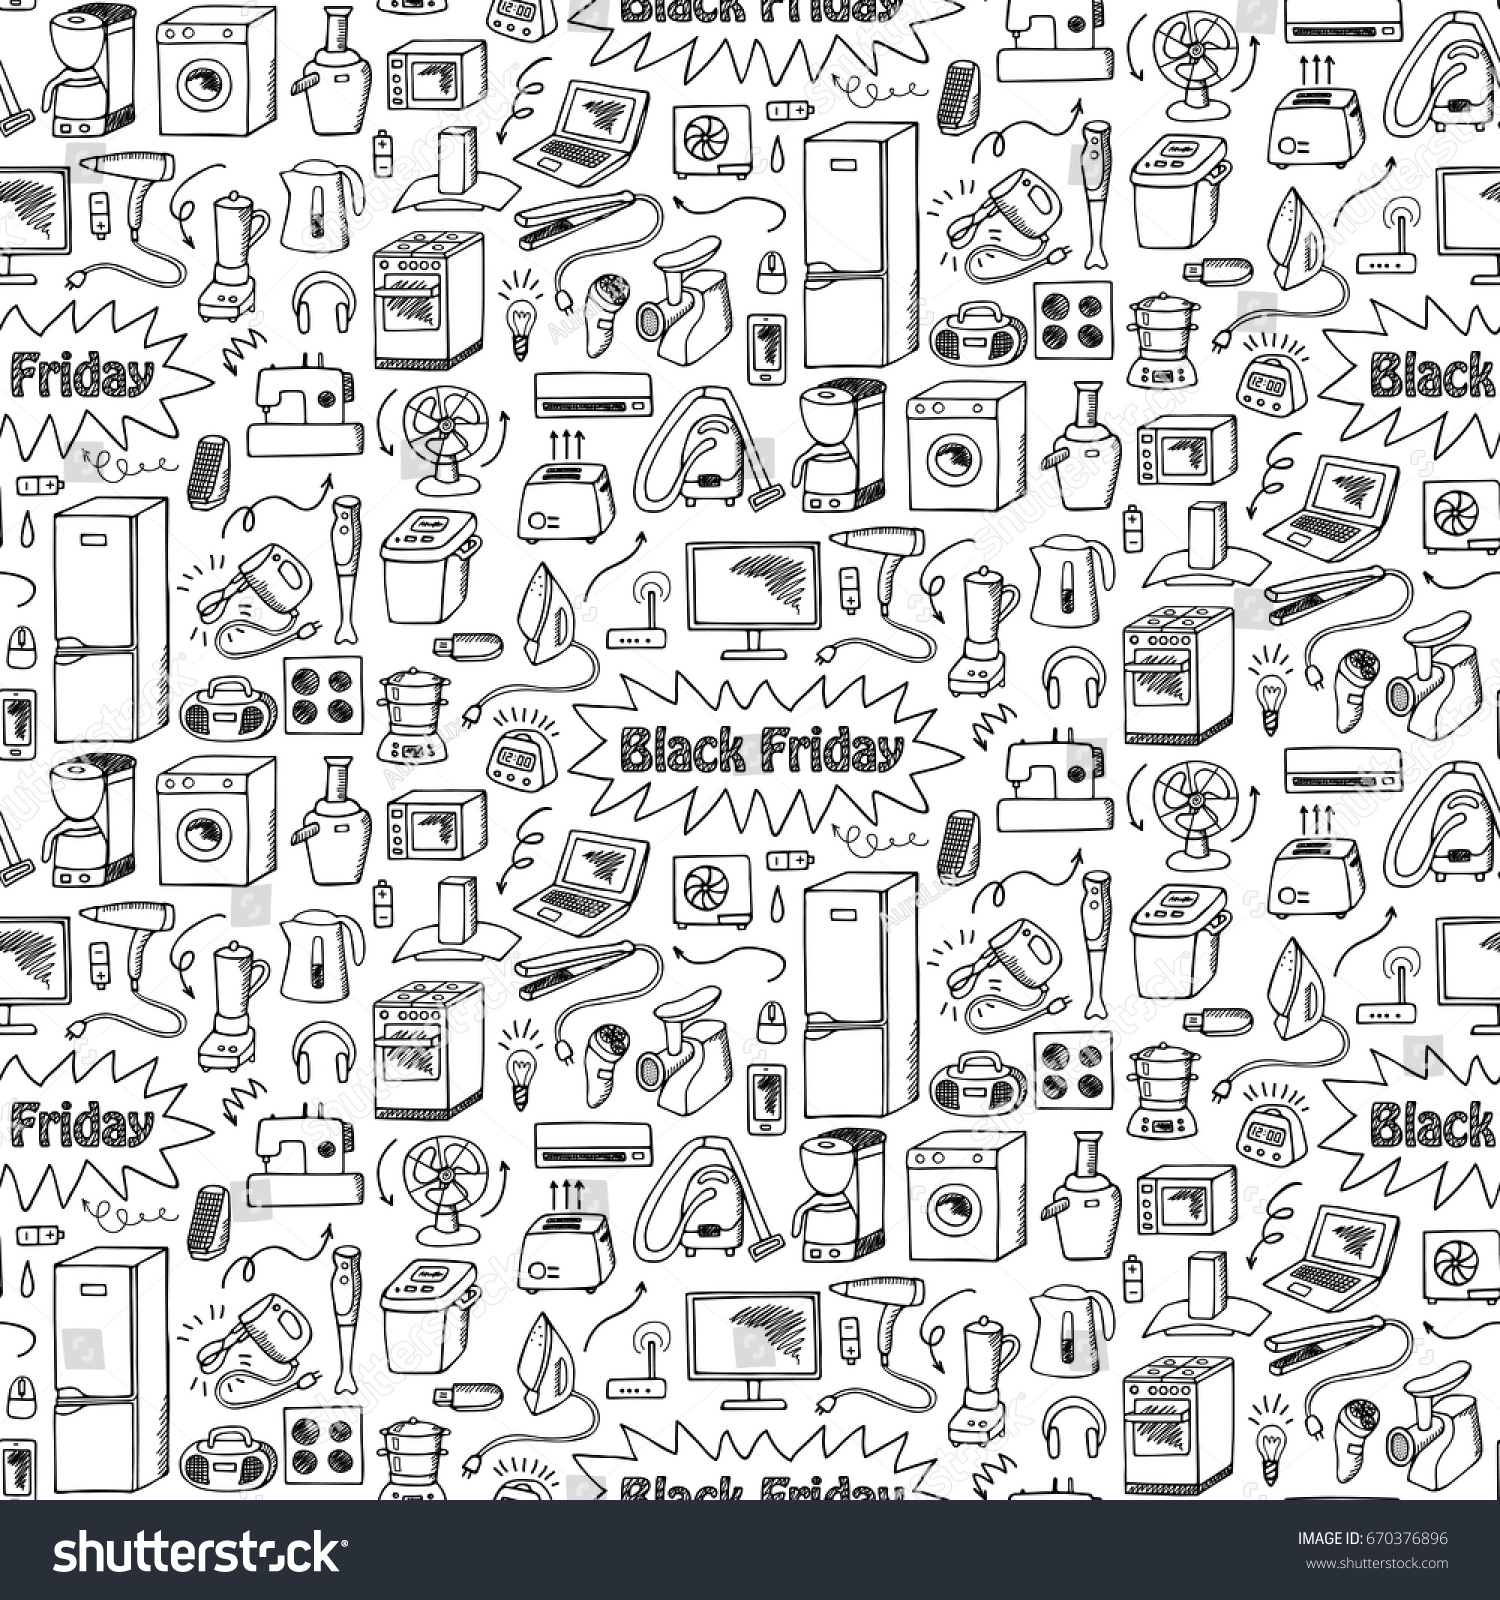 Black Friday household appliances hand drawn seamless pattern. Wallpaper of sketch equipment with doodle elements. Coloring page.